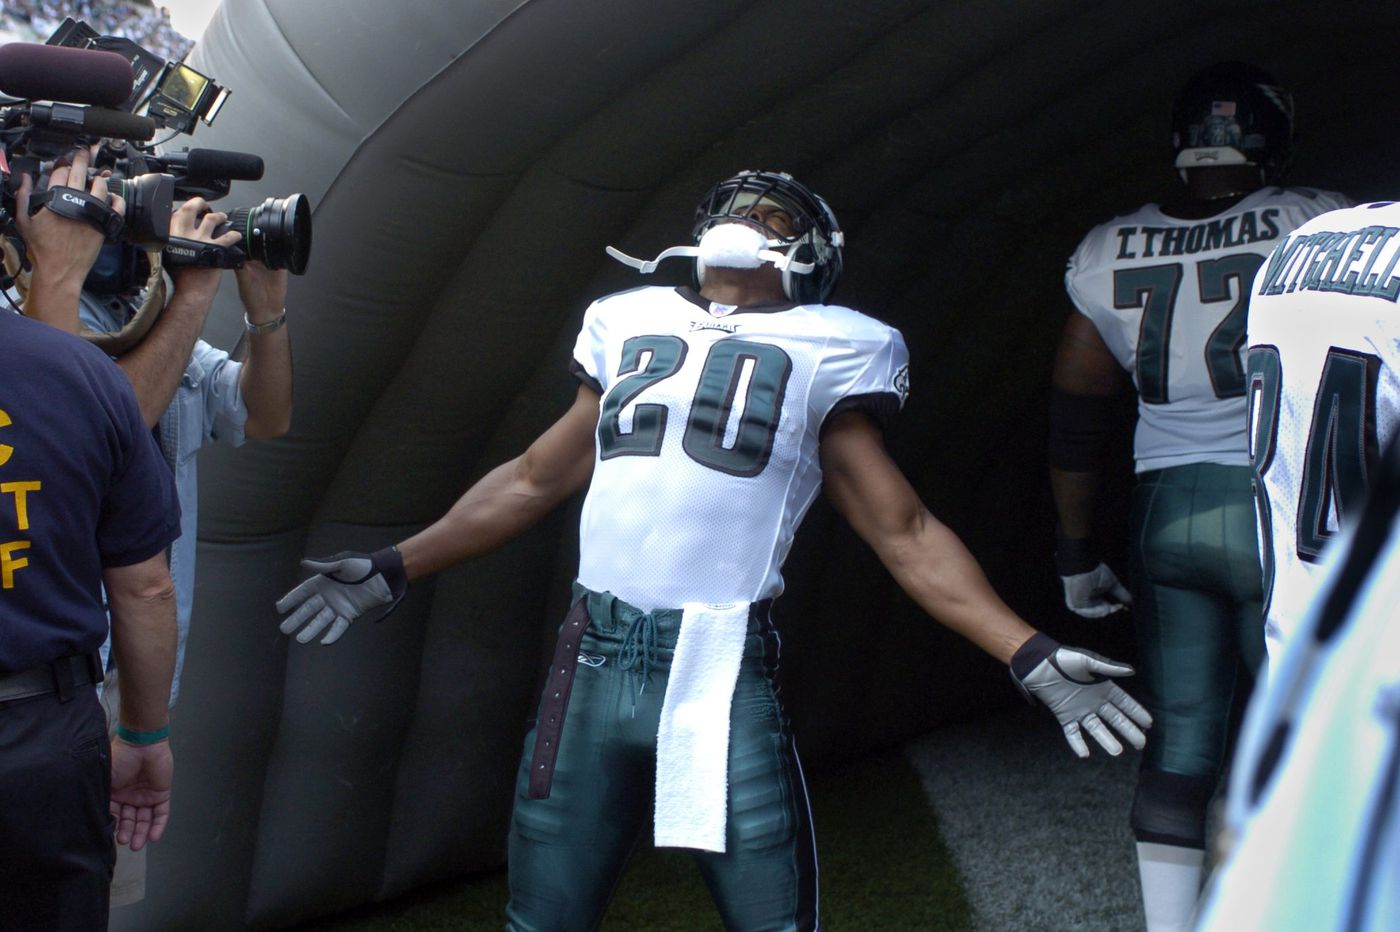 What you need to know about Brian Dawkins' Hall of Fame induction